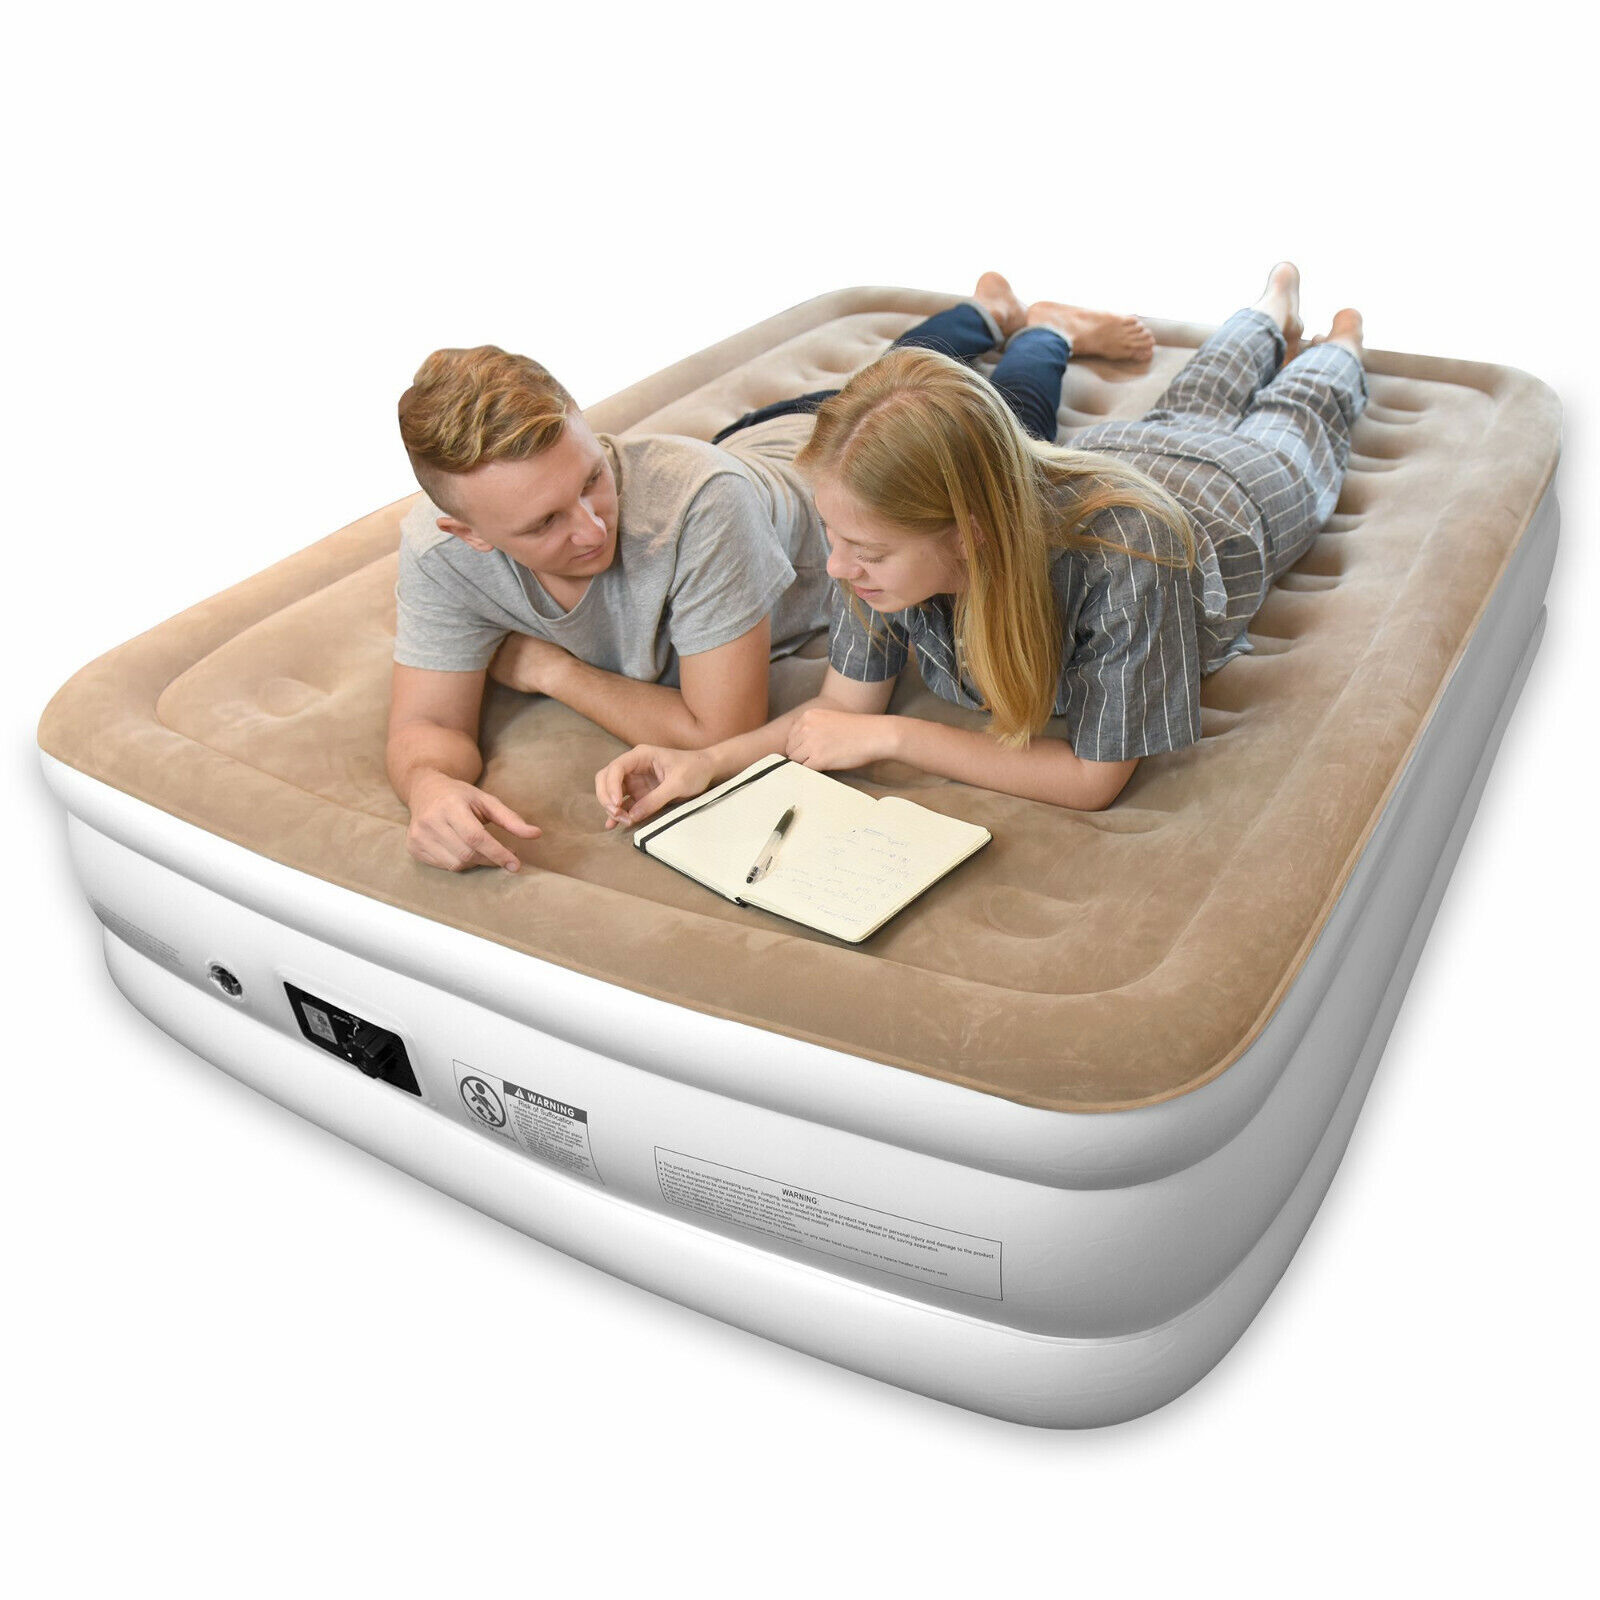 JOOFO TWIN Reliable Air Mattress with Built-in Quick Pump, Storage Bag, 18 in Beds & Mattresses